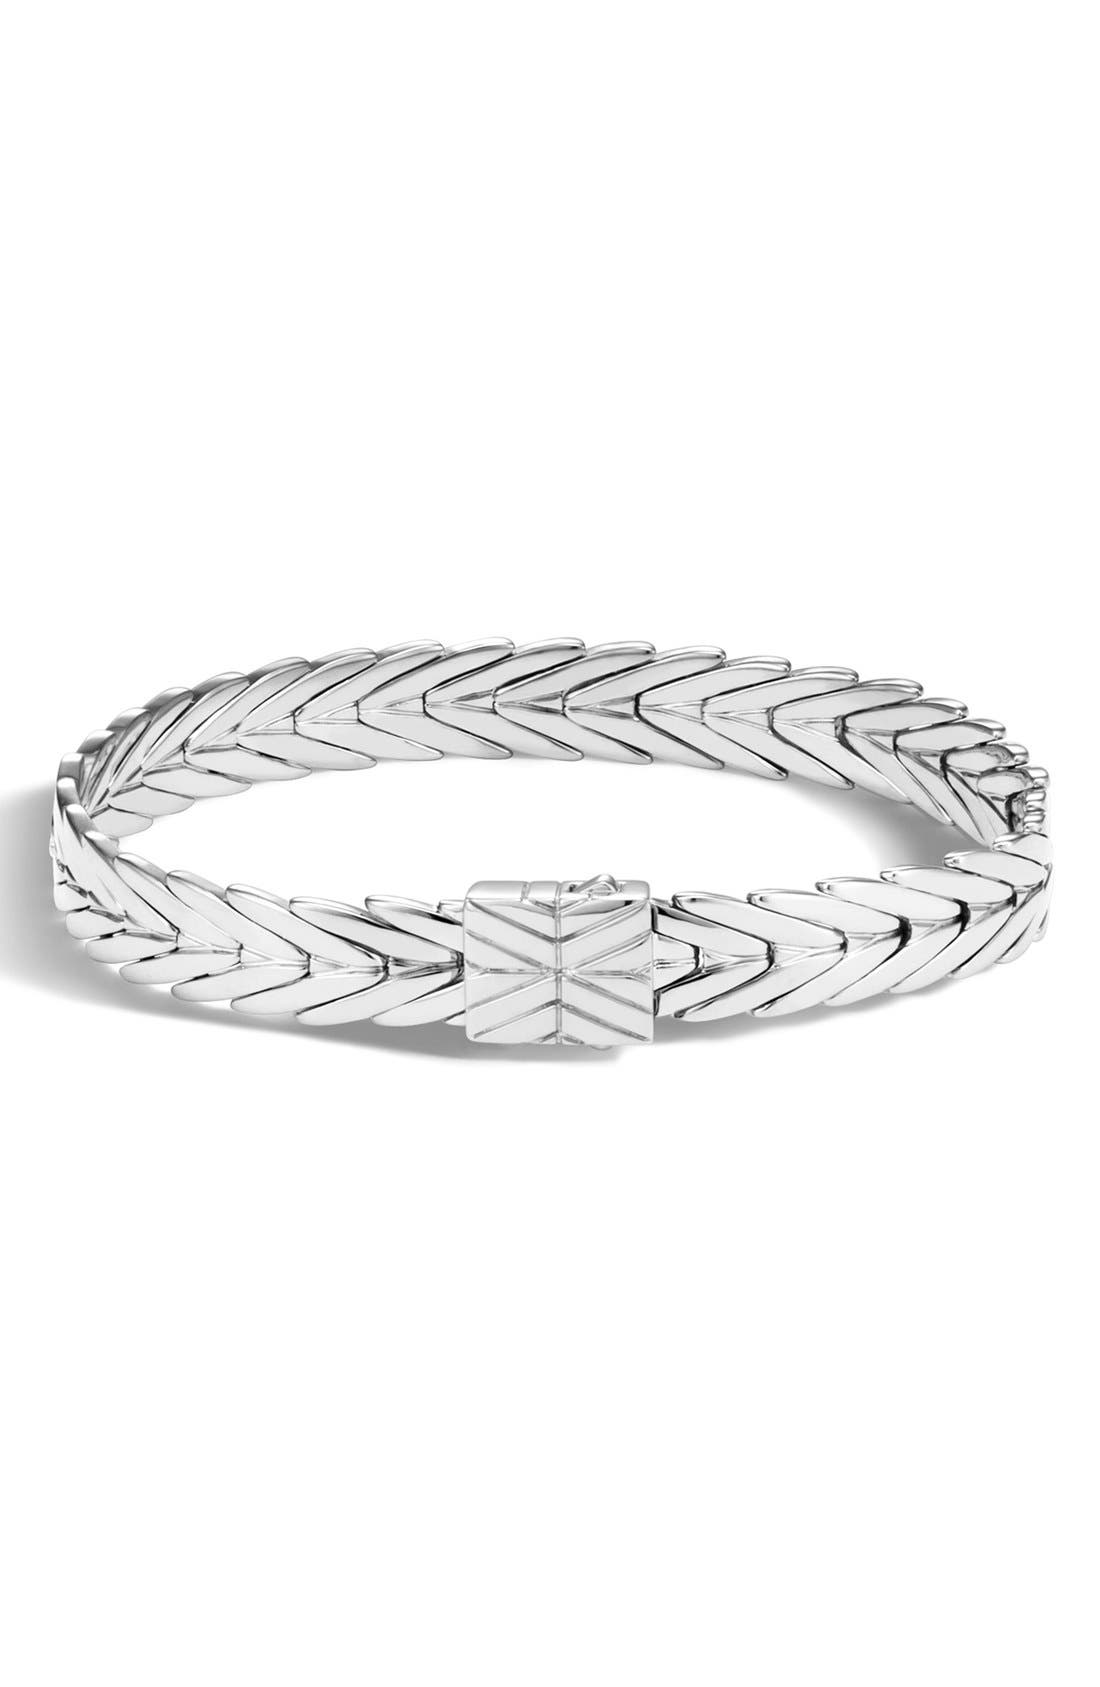 Modern Chain 8mm Bracelet,                         Main,                         color, SILVER